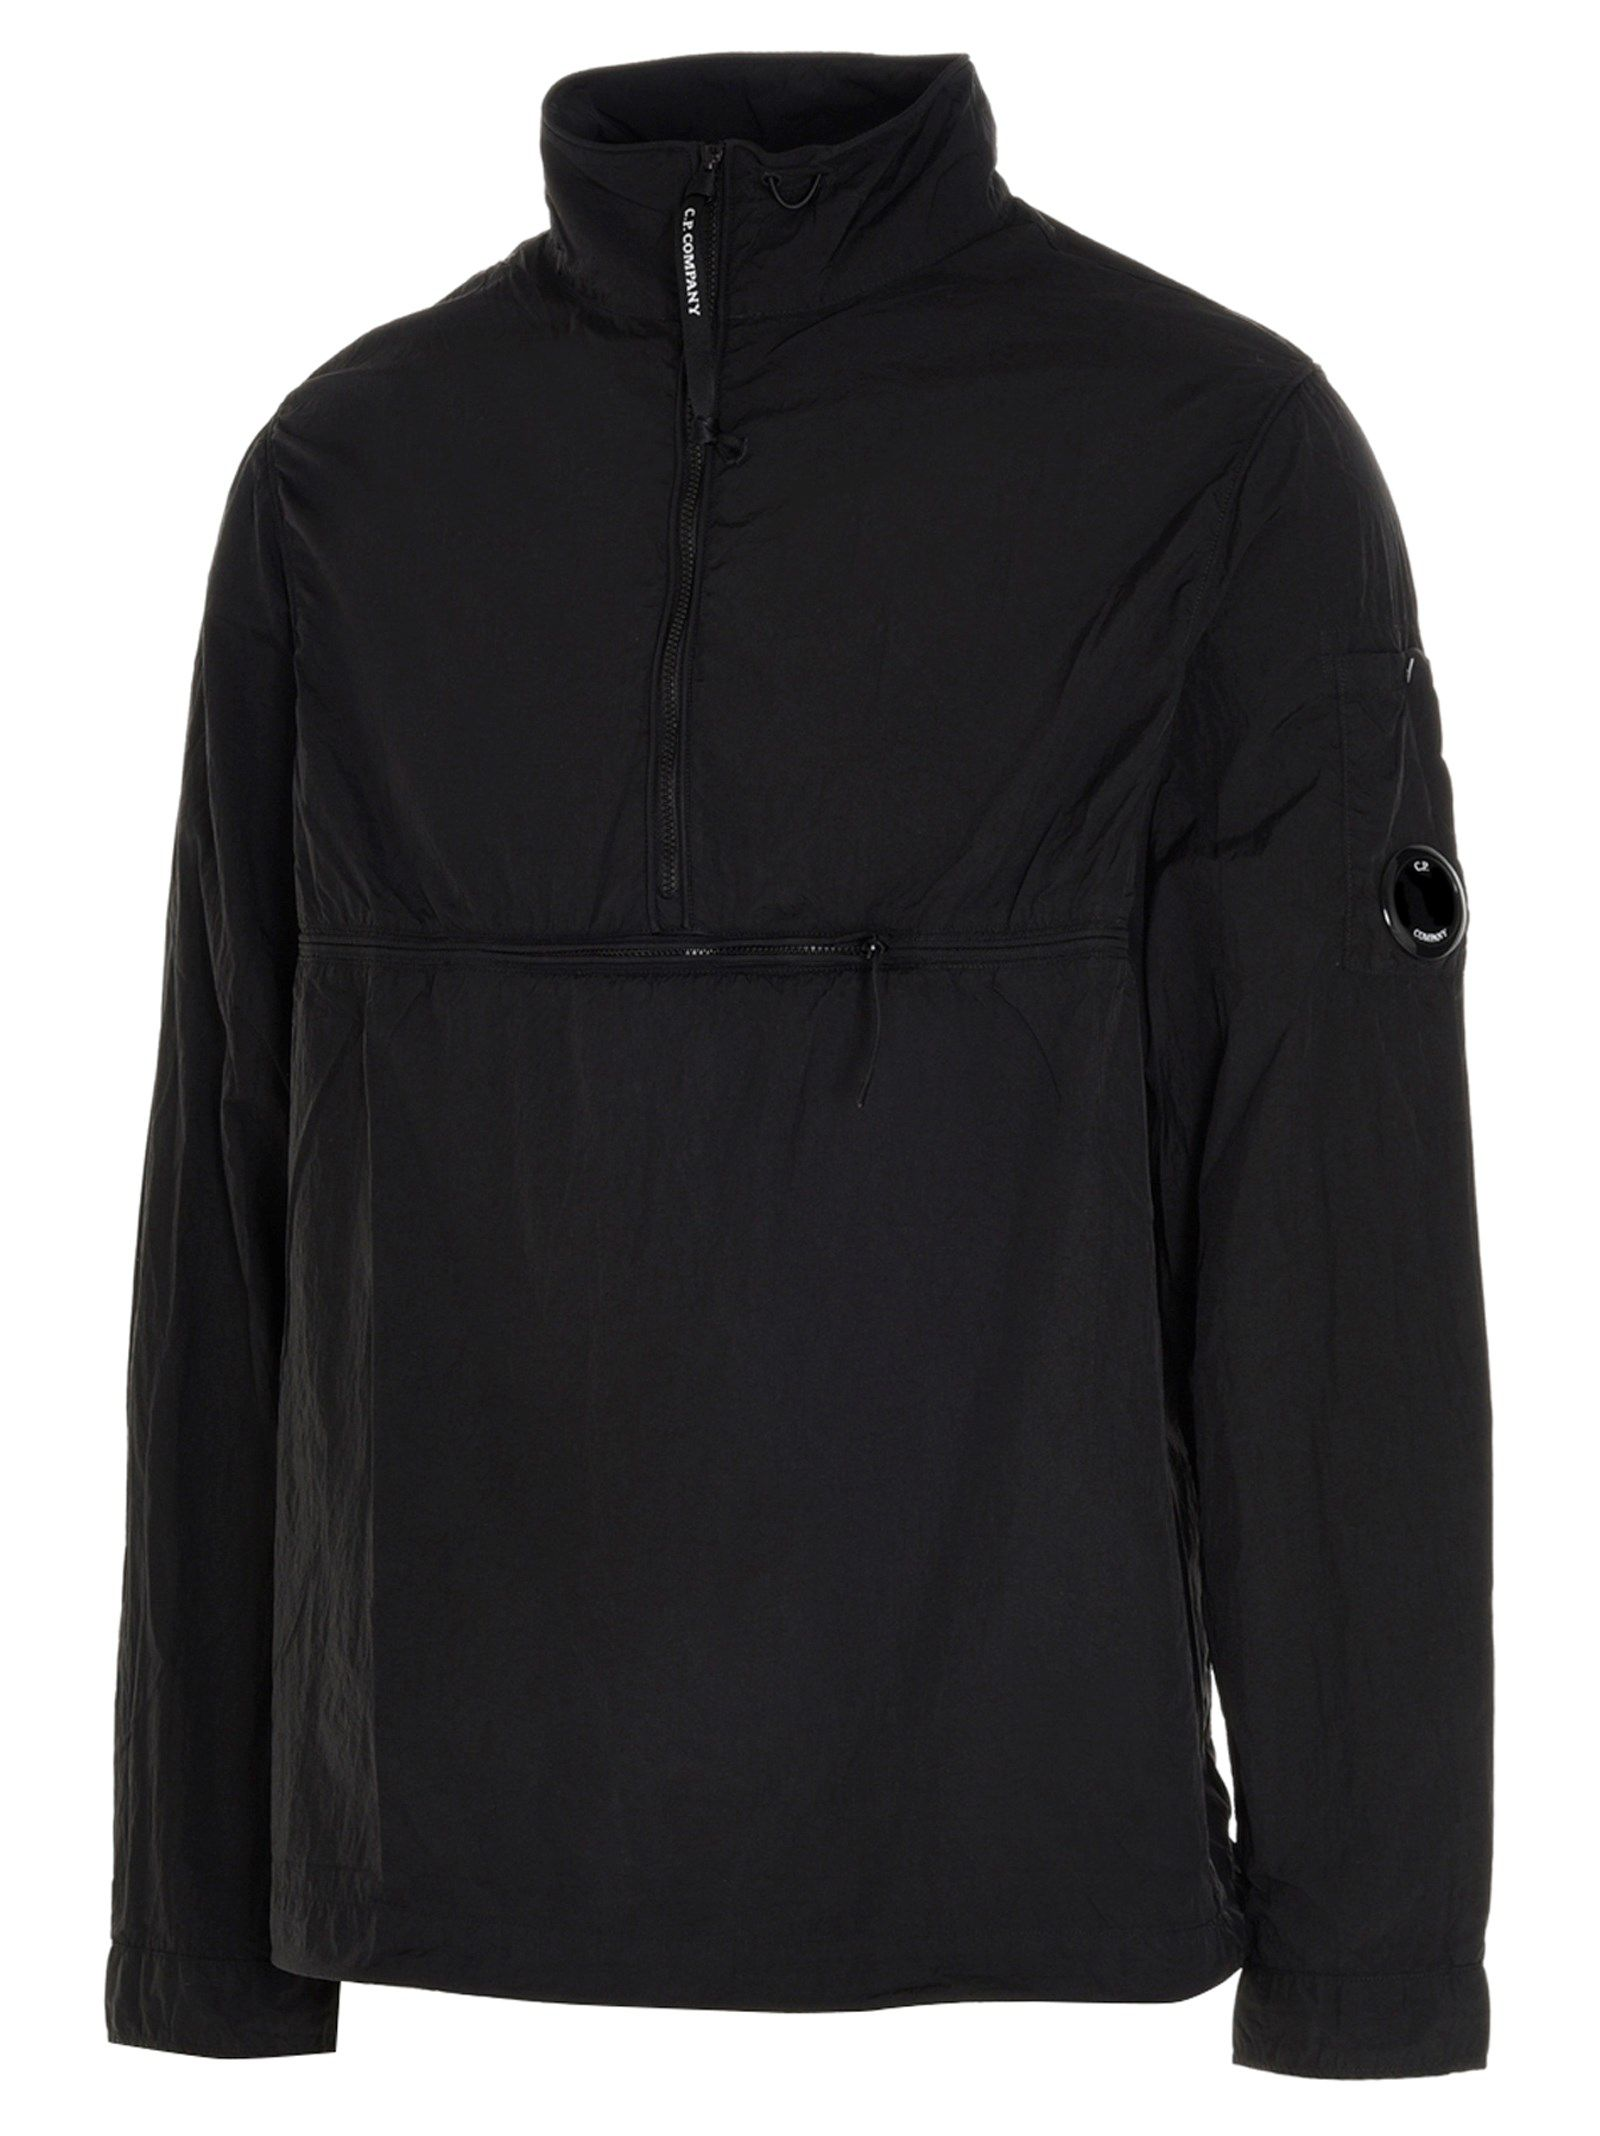 C.P. COMPANY Jackets CP COMPANY MEN'S BLACK OTHER MATERIALS OUTERWEAR JACKET